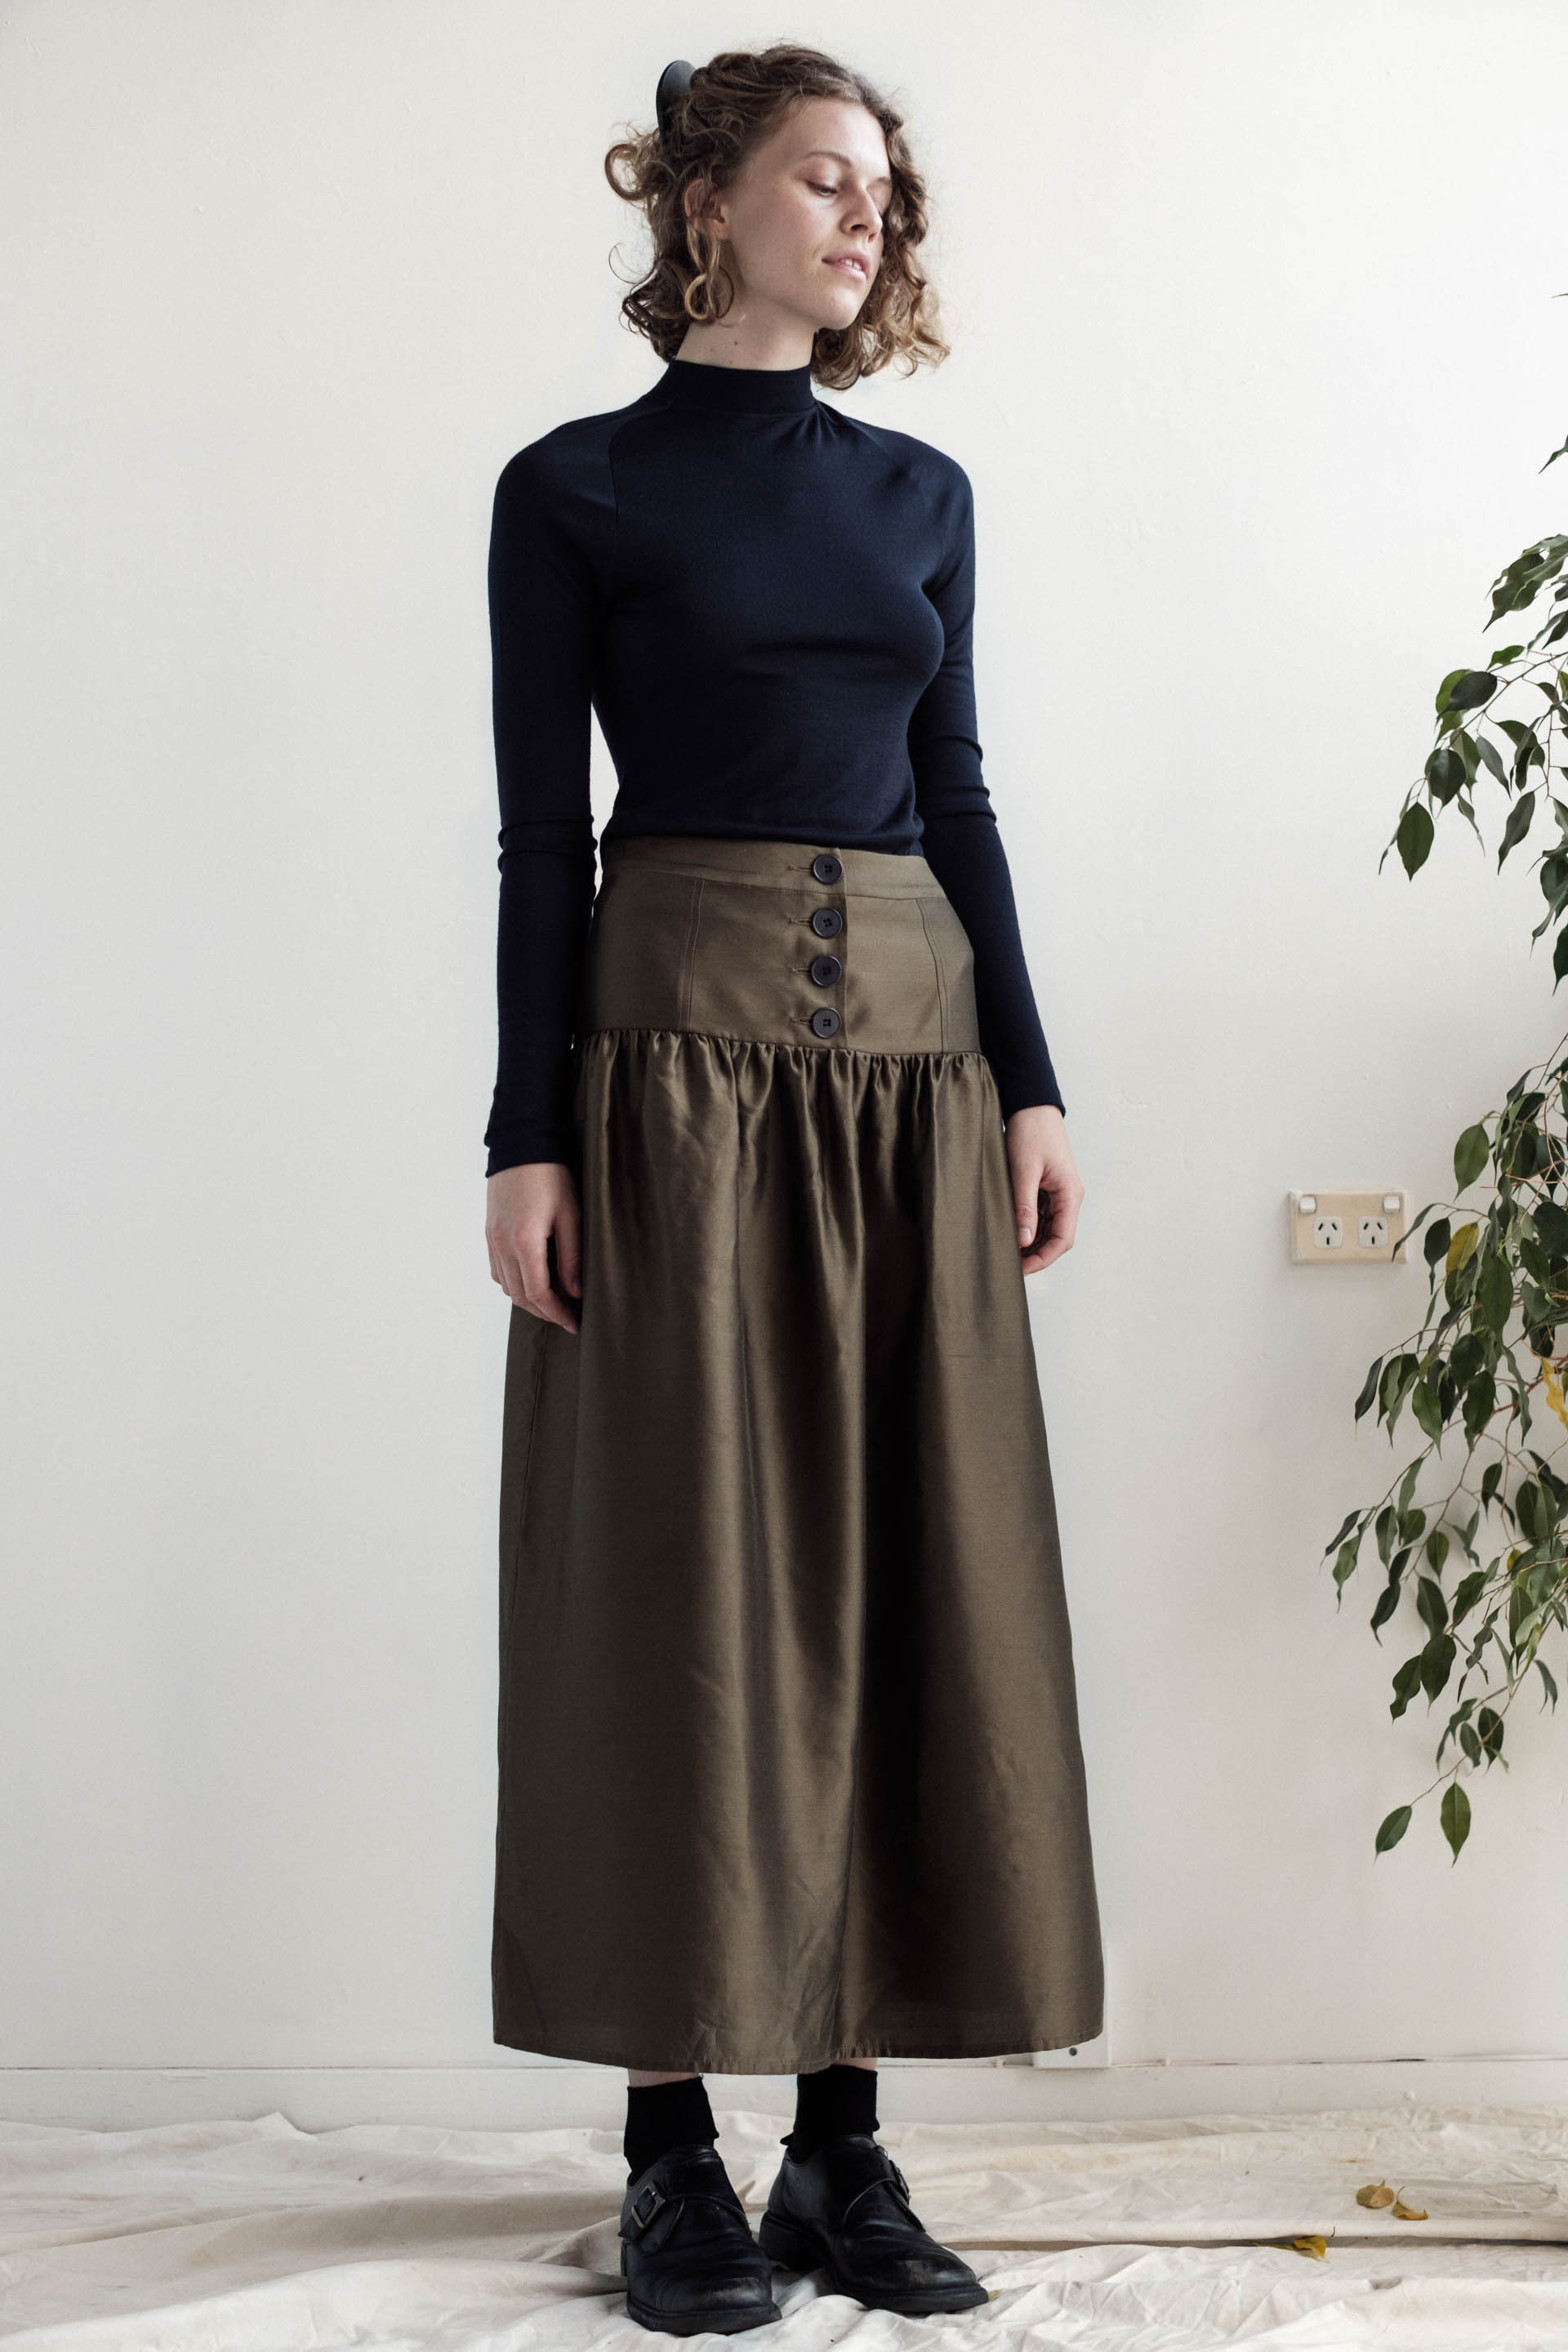 Zabota Skirt - Bronze Silk Cotton